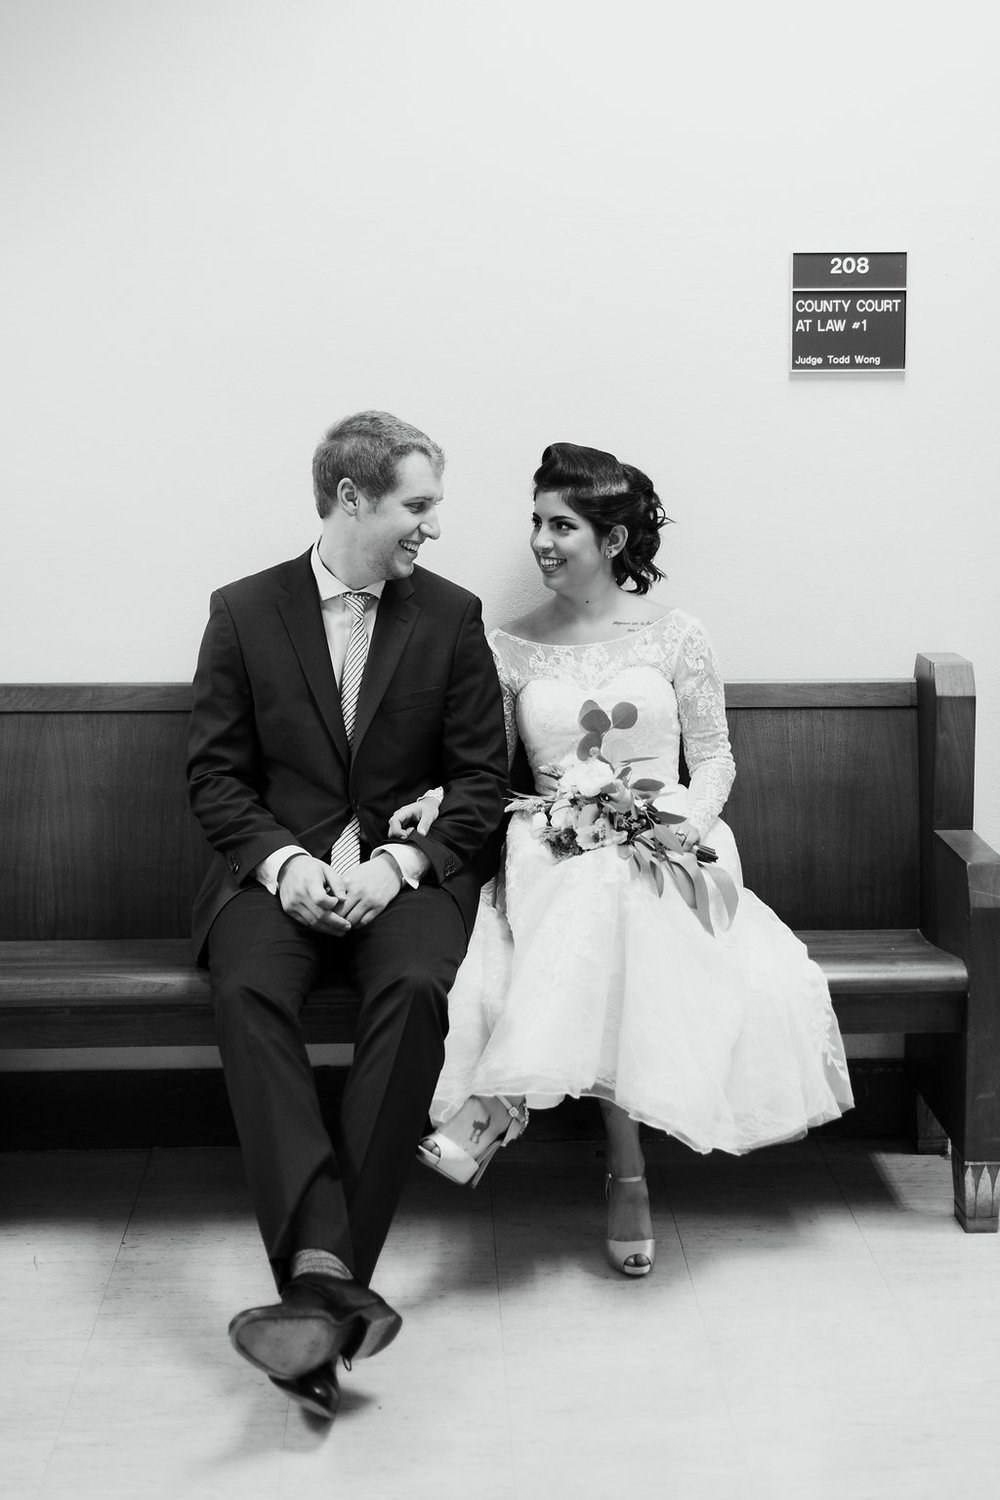 Paige-Newton-Photography-Elopement-Photographer-Austin-Courthouse-Fresas-Chicken0027.jpg